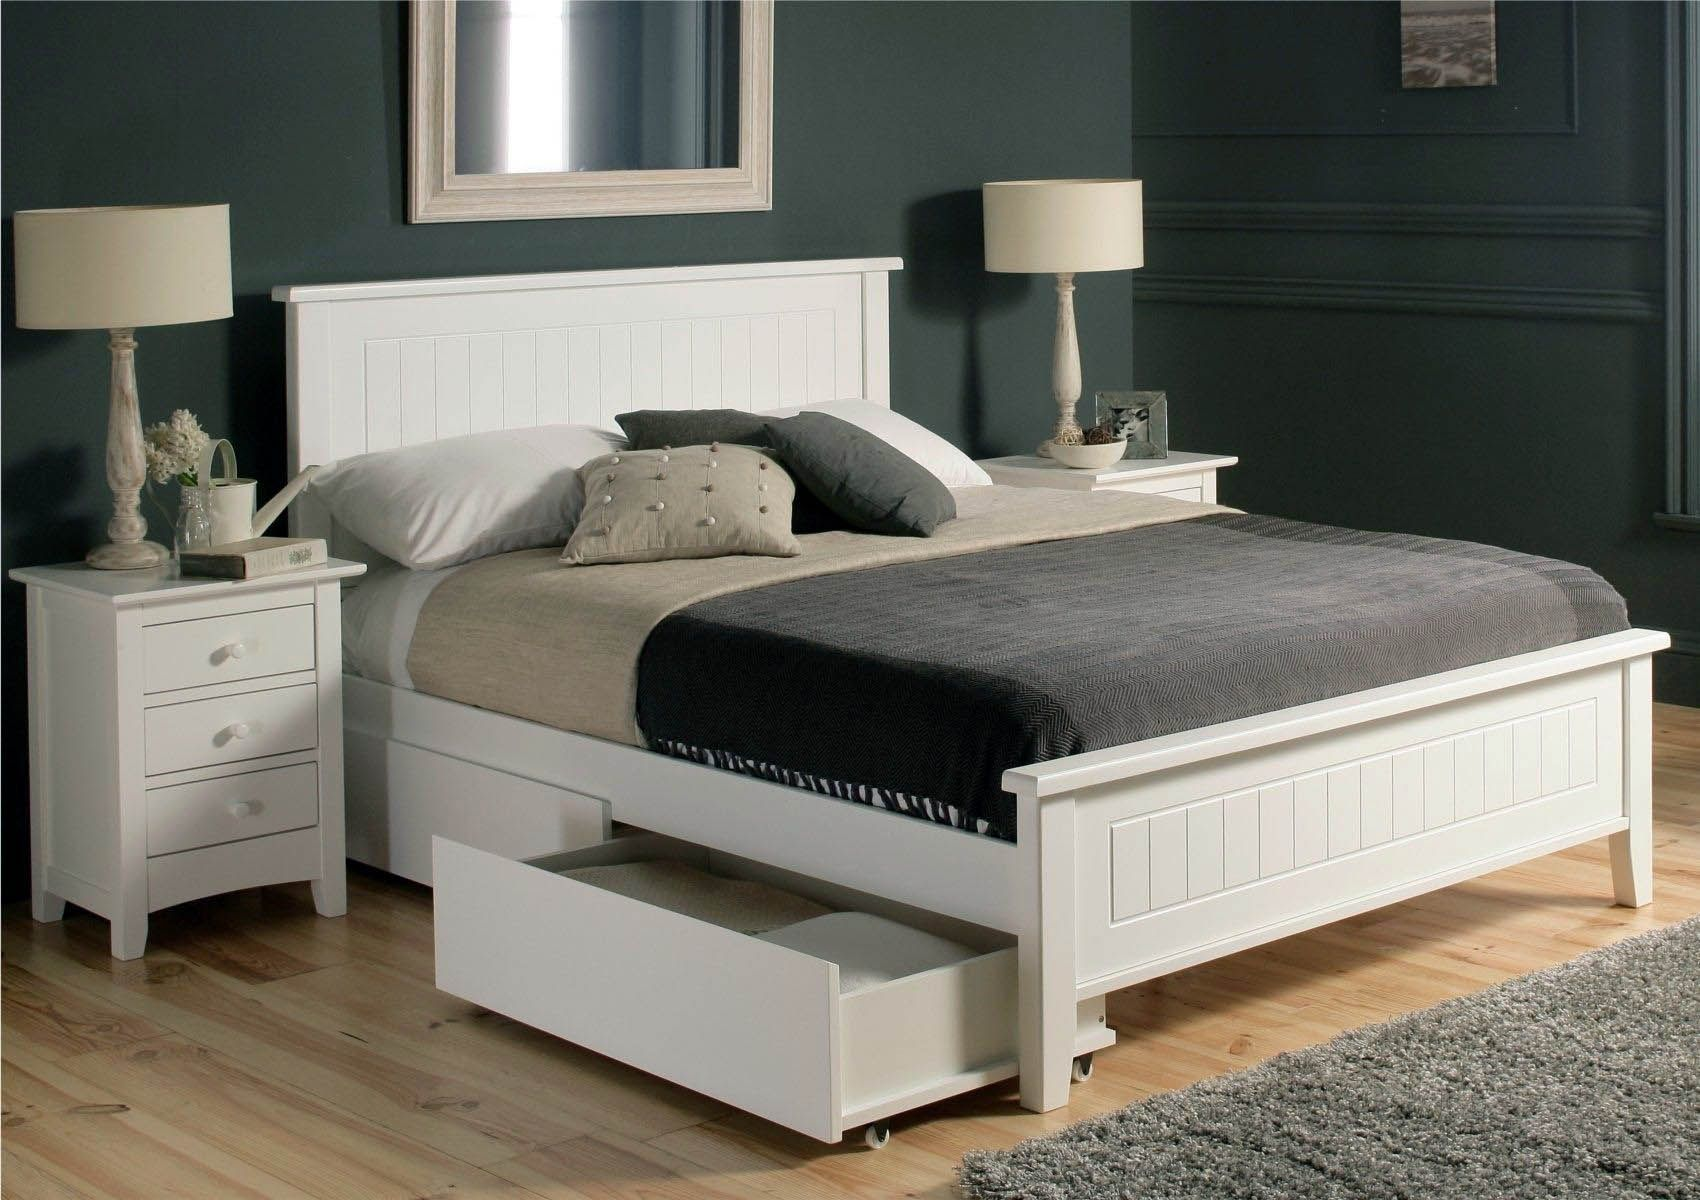 Two Lovely Wrought Iron Single Bed Frames Other Gumtree 123308903 Single Bed Frame Bed Frame Single Bed